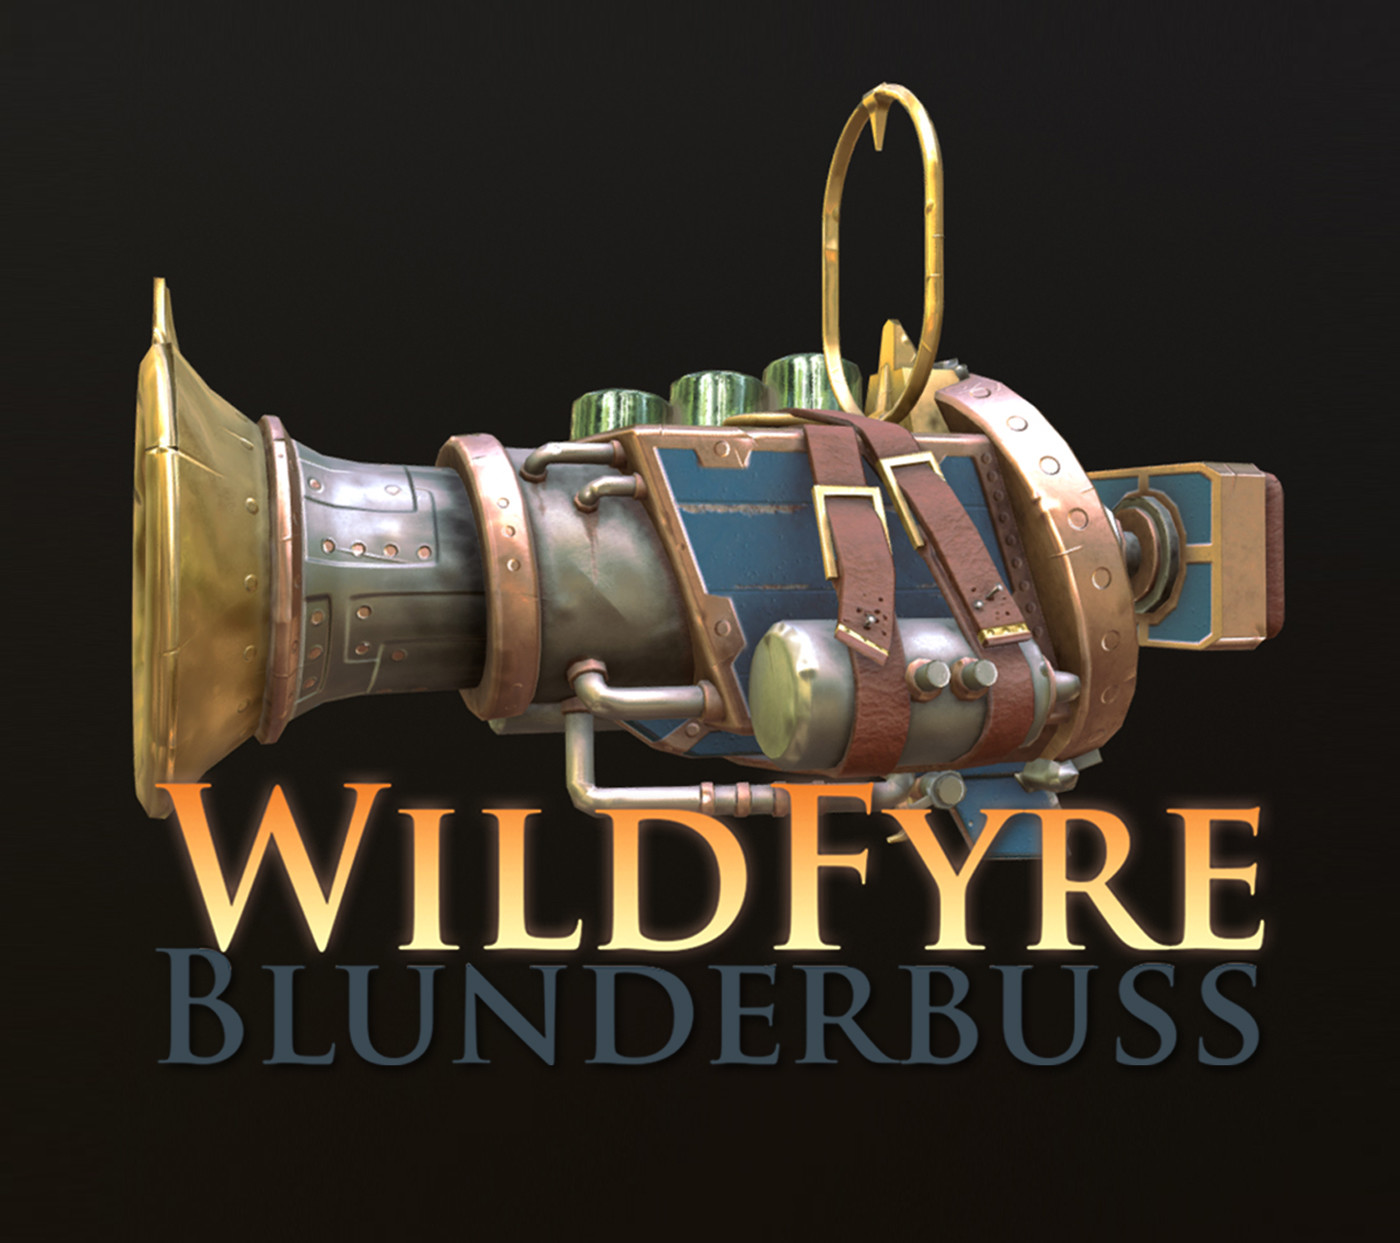 WildFyre Blunderbuss - 3D stylized shotgun